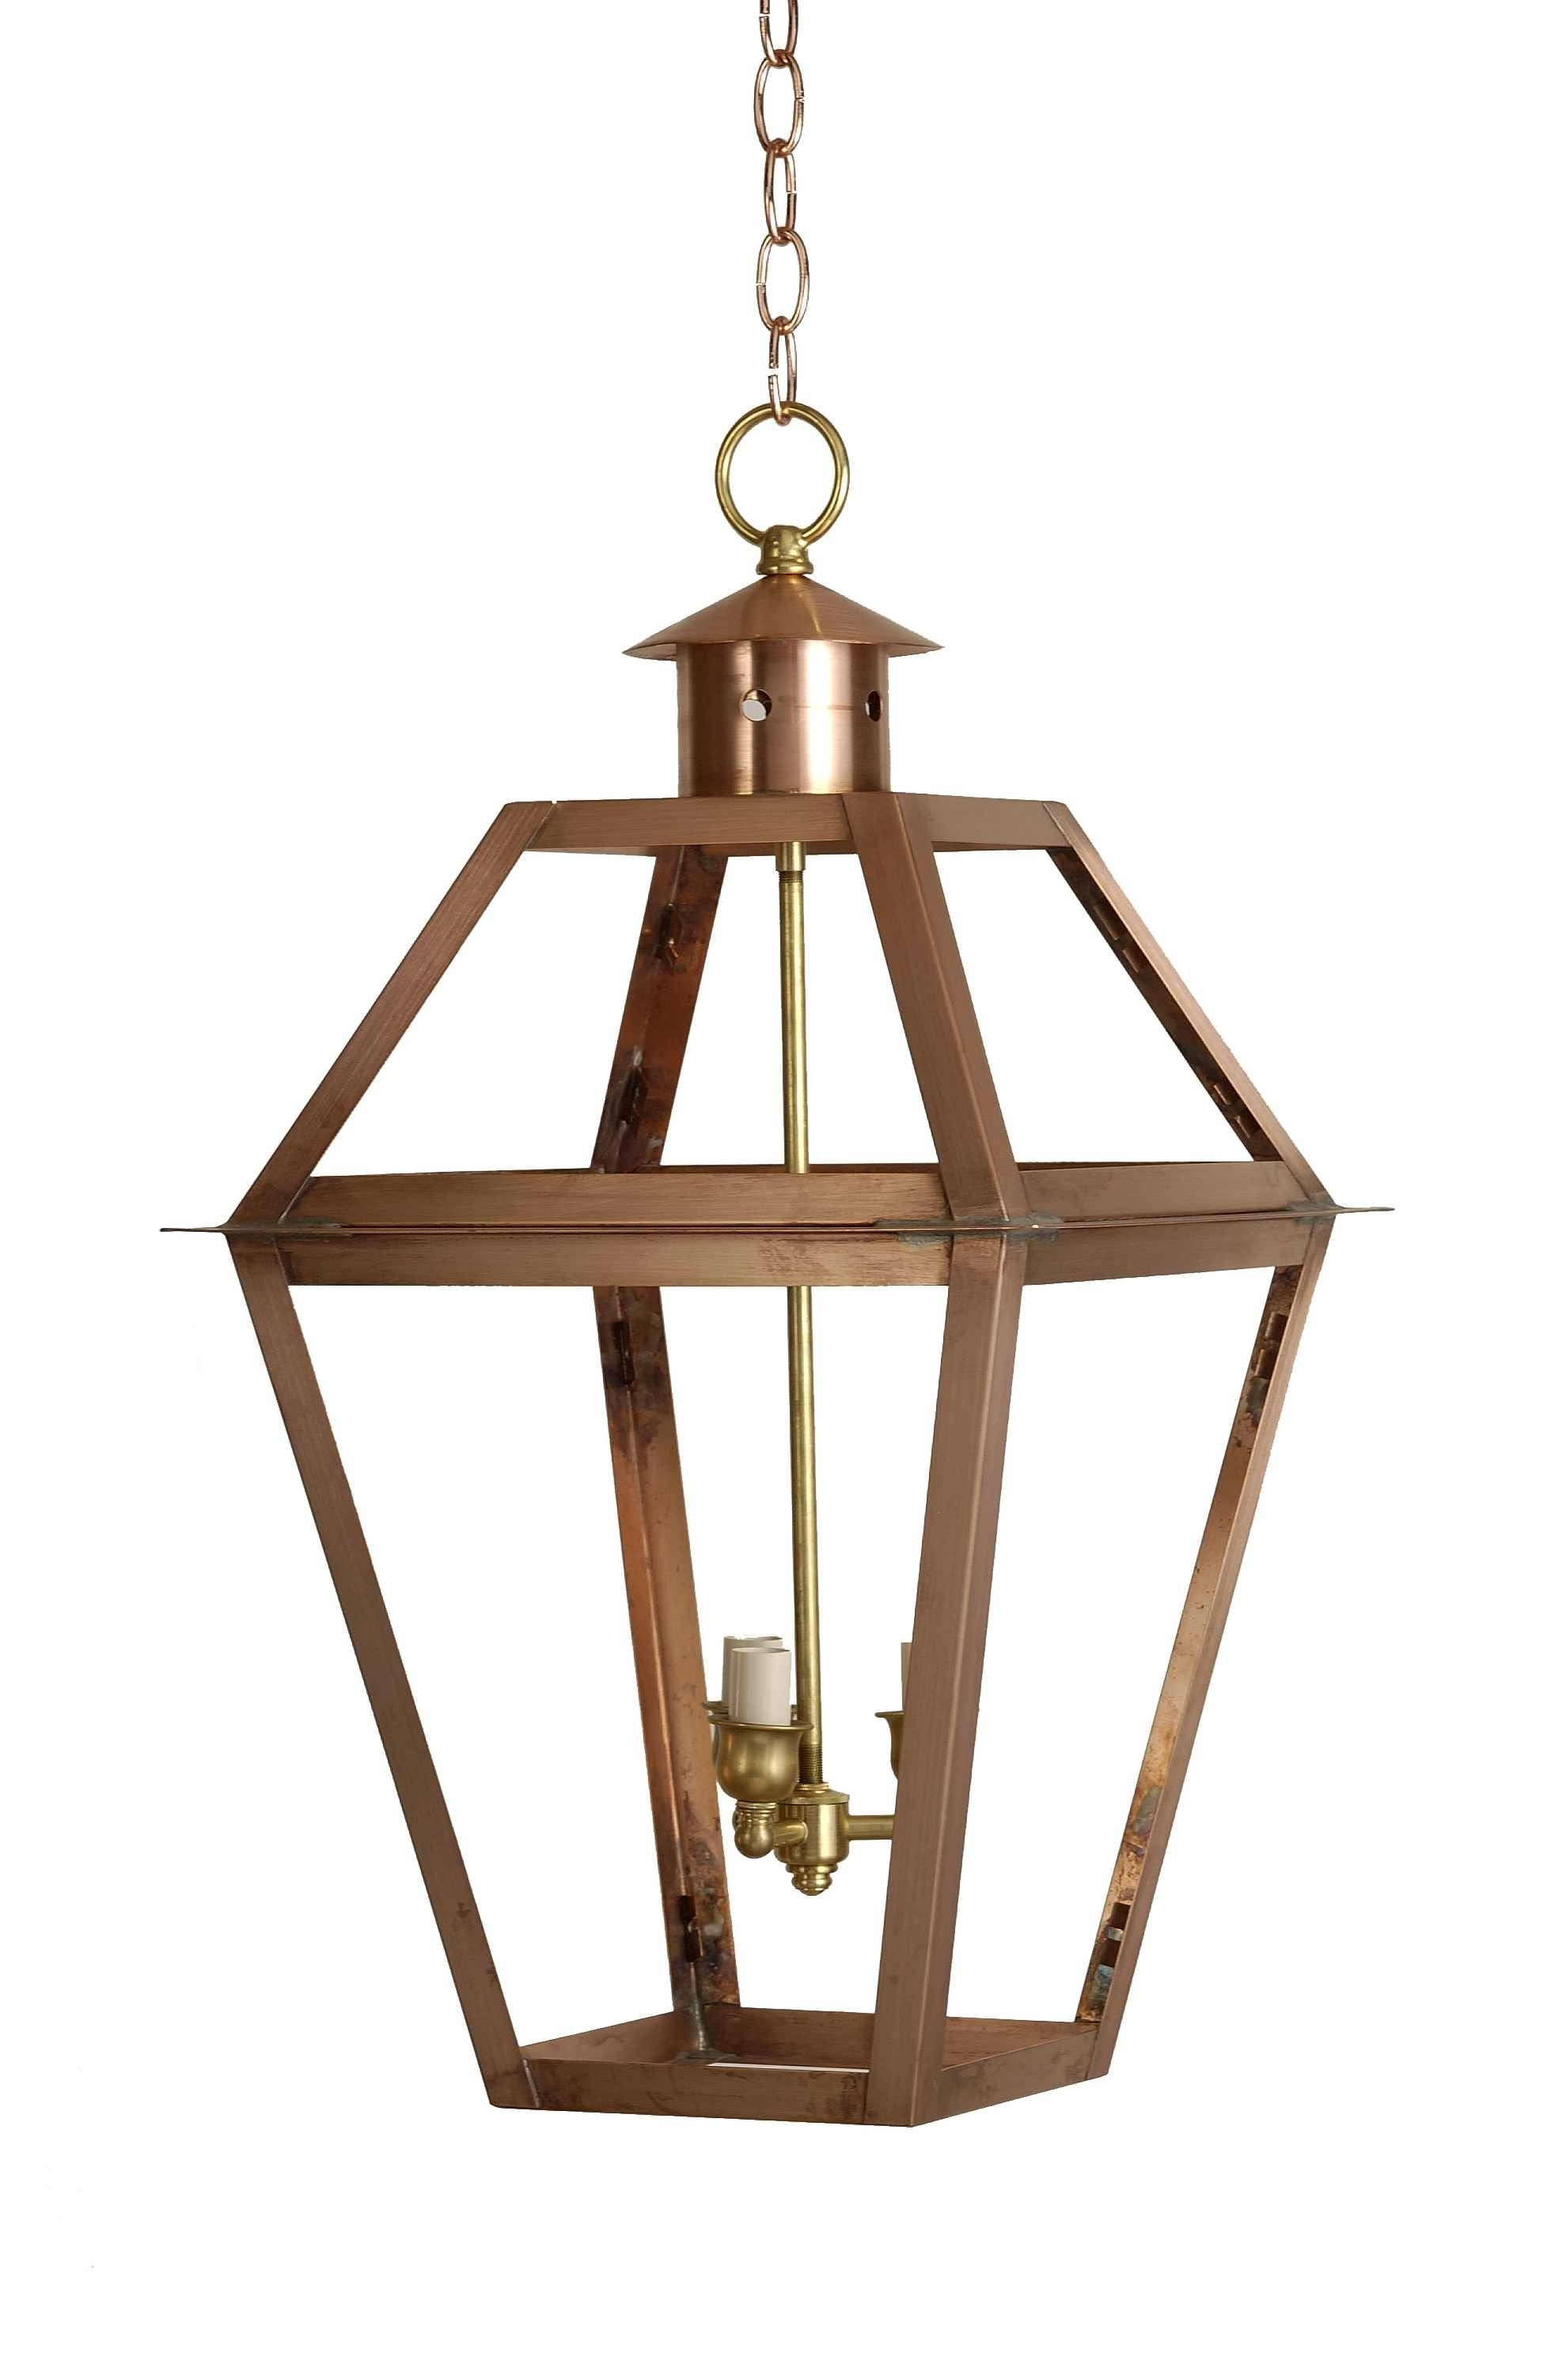 Fireplace : Charleston Chain Mount Outdoor Lantern Hanging Lanterns Throughout Outdoor Hanging Lanterns From Australia (#2 of 15)